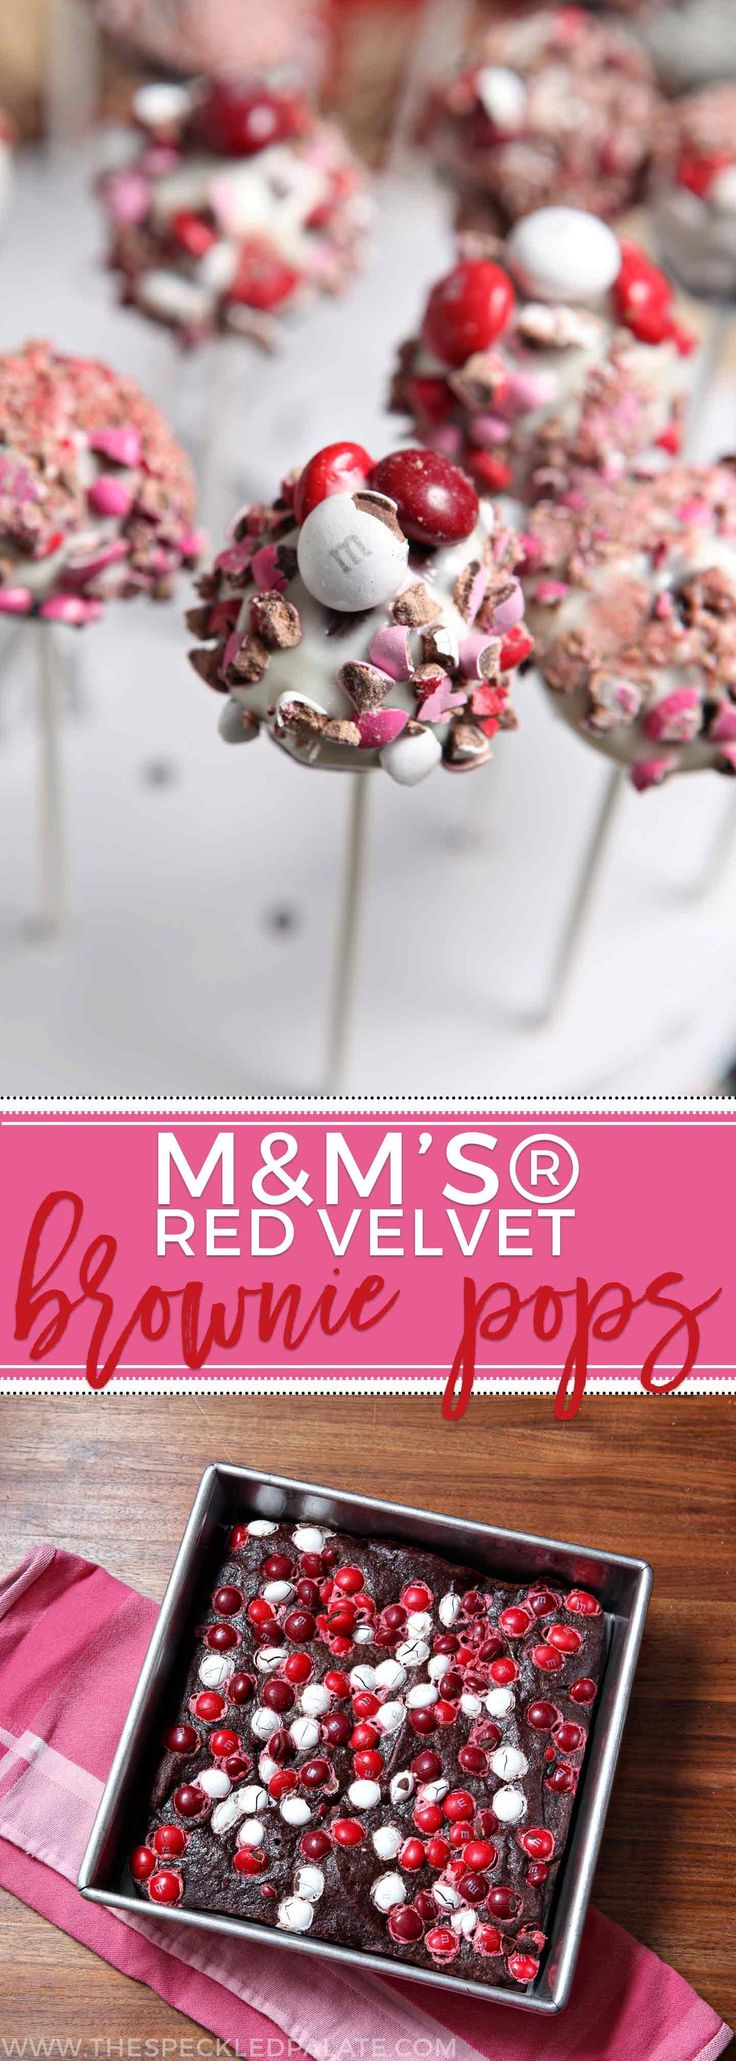 Bake your loved ones and friends these M&M's® Red Velvet Brownie Pops for Valentine's Day! These dense, rich brownie pops are studded with M&M's® Red Velvet, dipped in a decadent cream cheese icing and then topped with crushed M&M's. #ad #RedVelvetLove #CollectiveBias